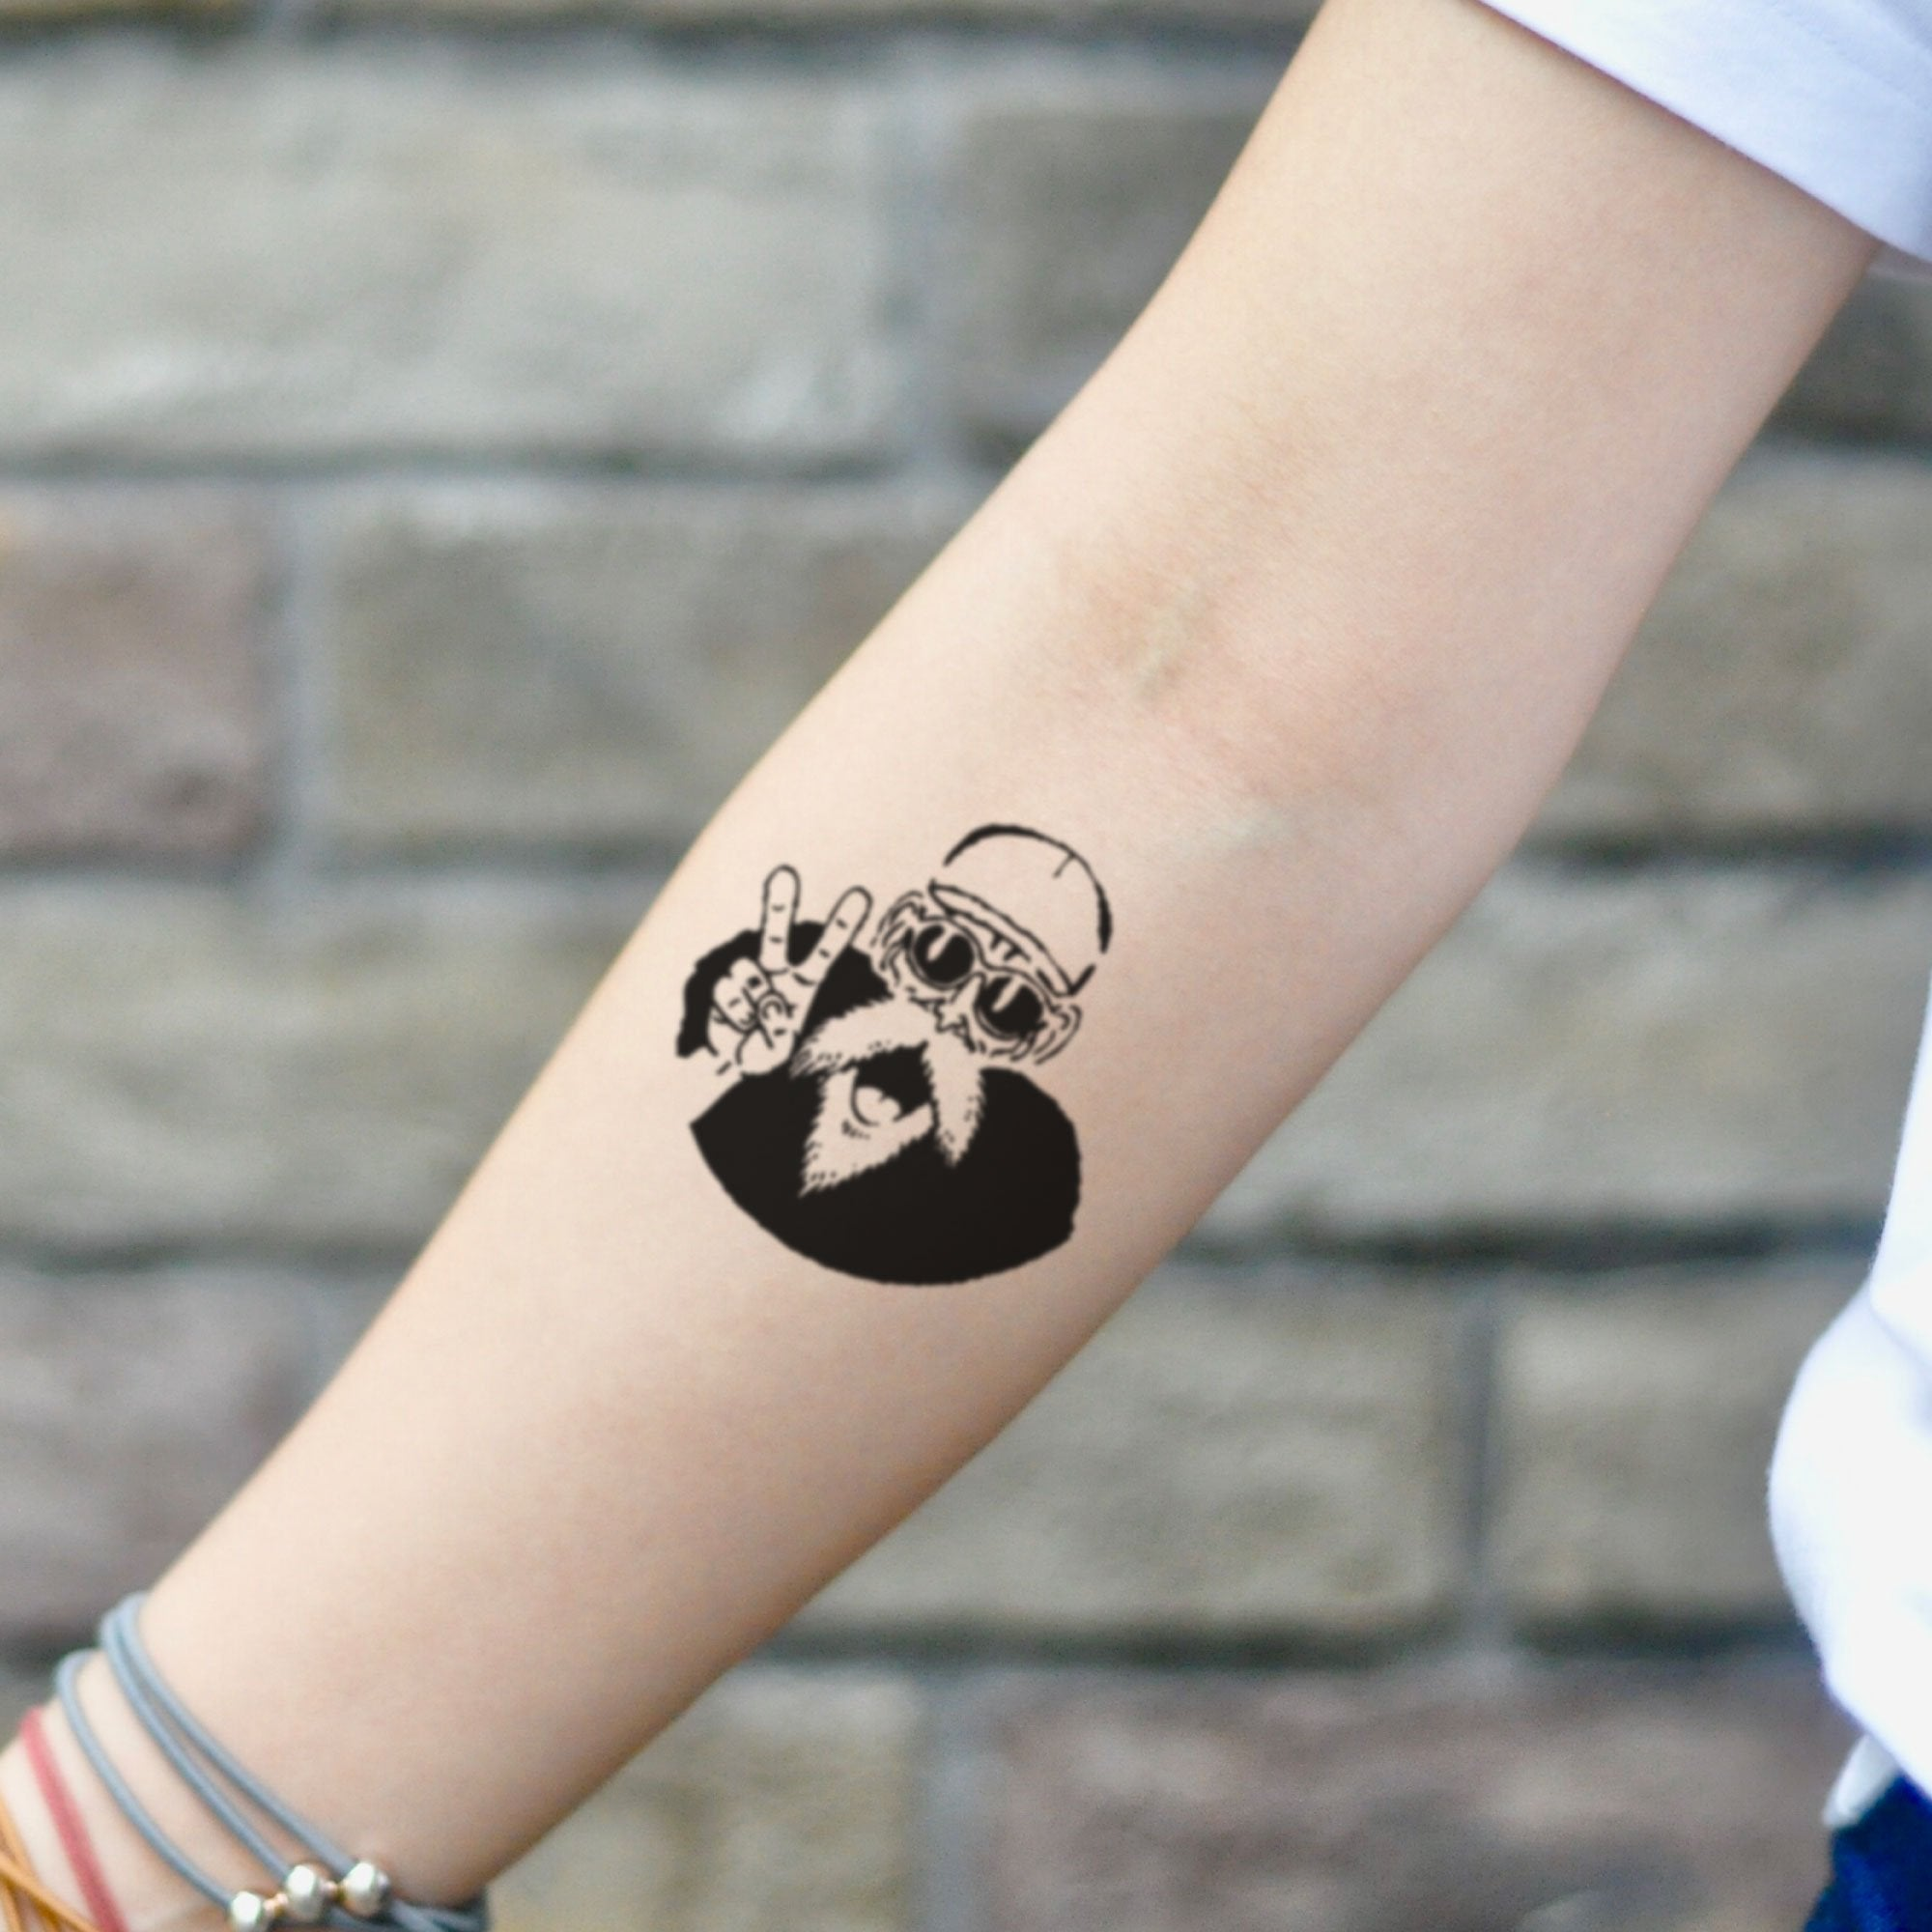 Tattoo Small Ball: Master Roshi Dragon Ball Z Temporary Tattoo Sticker